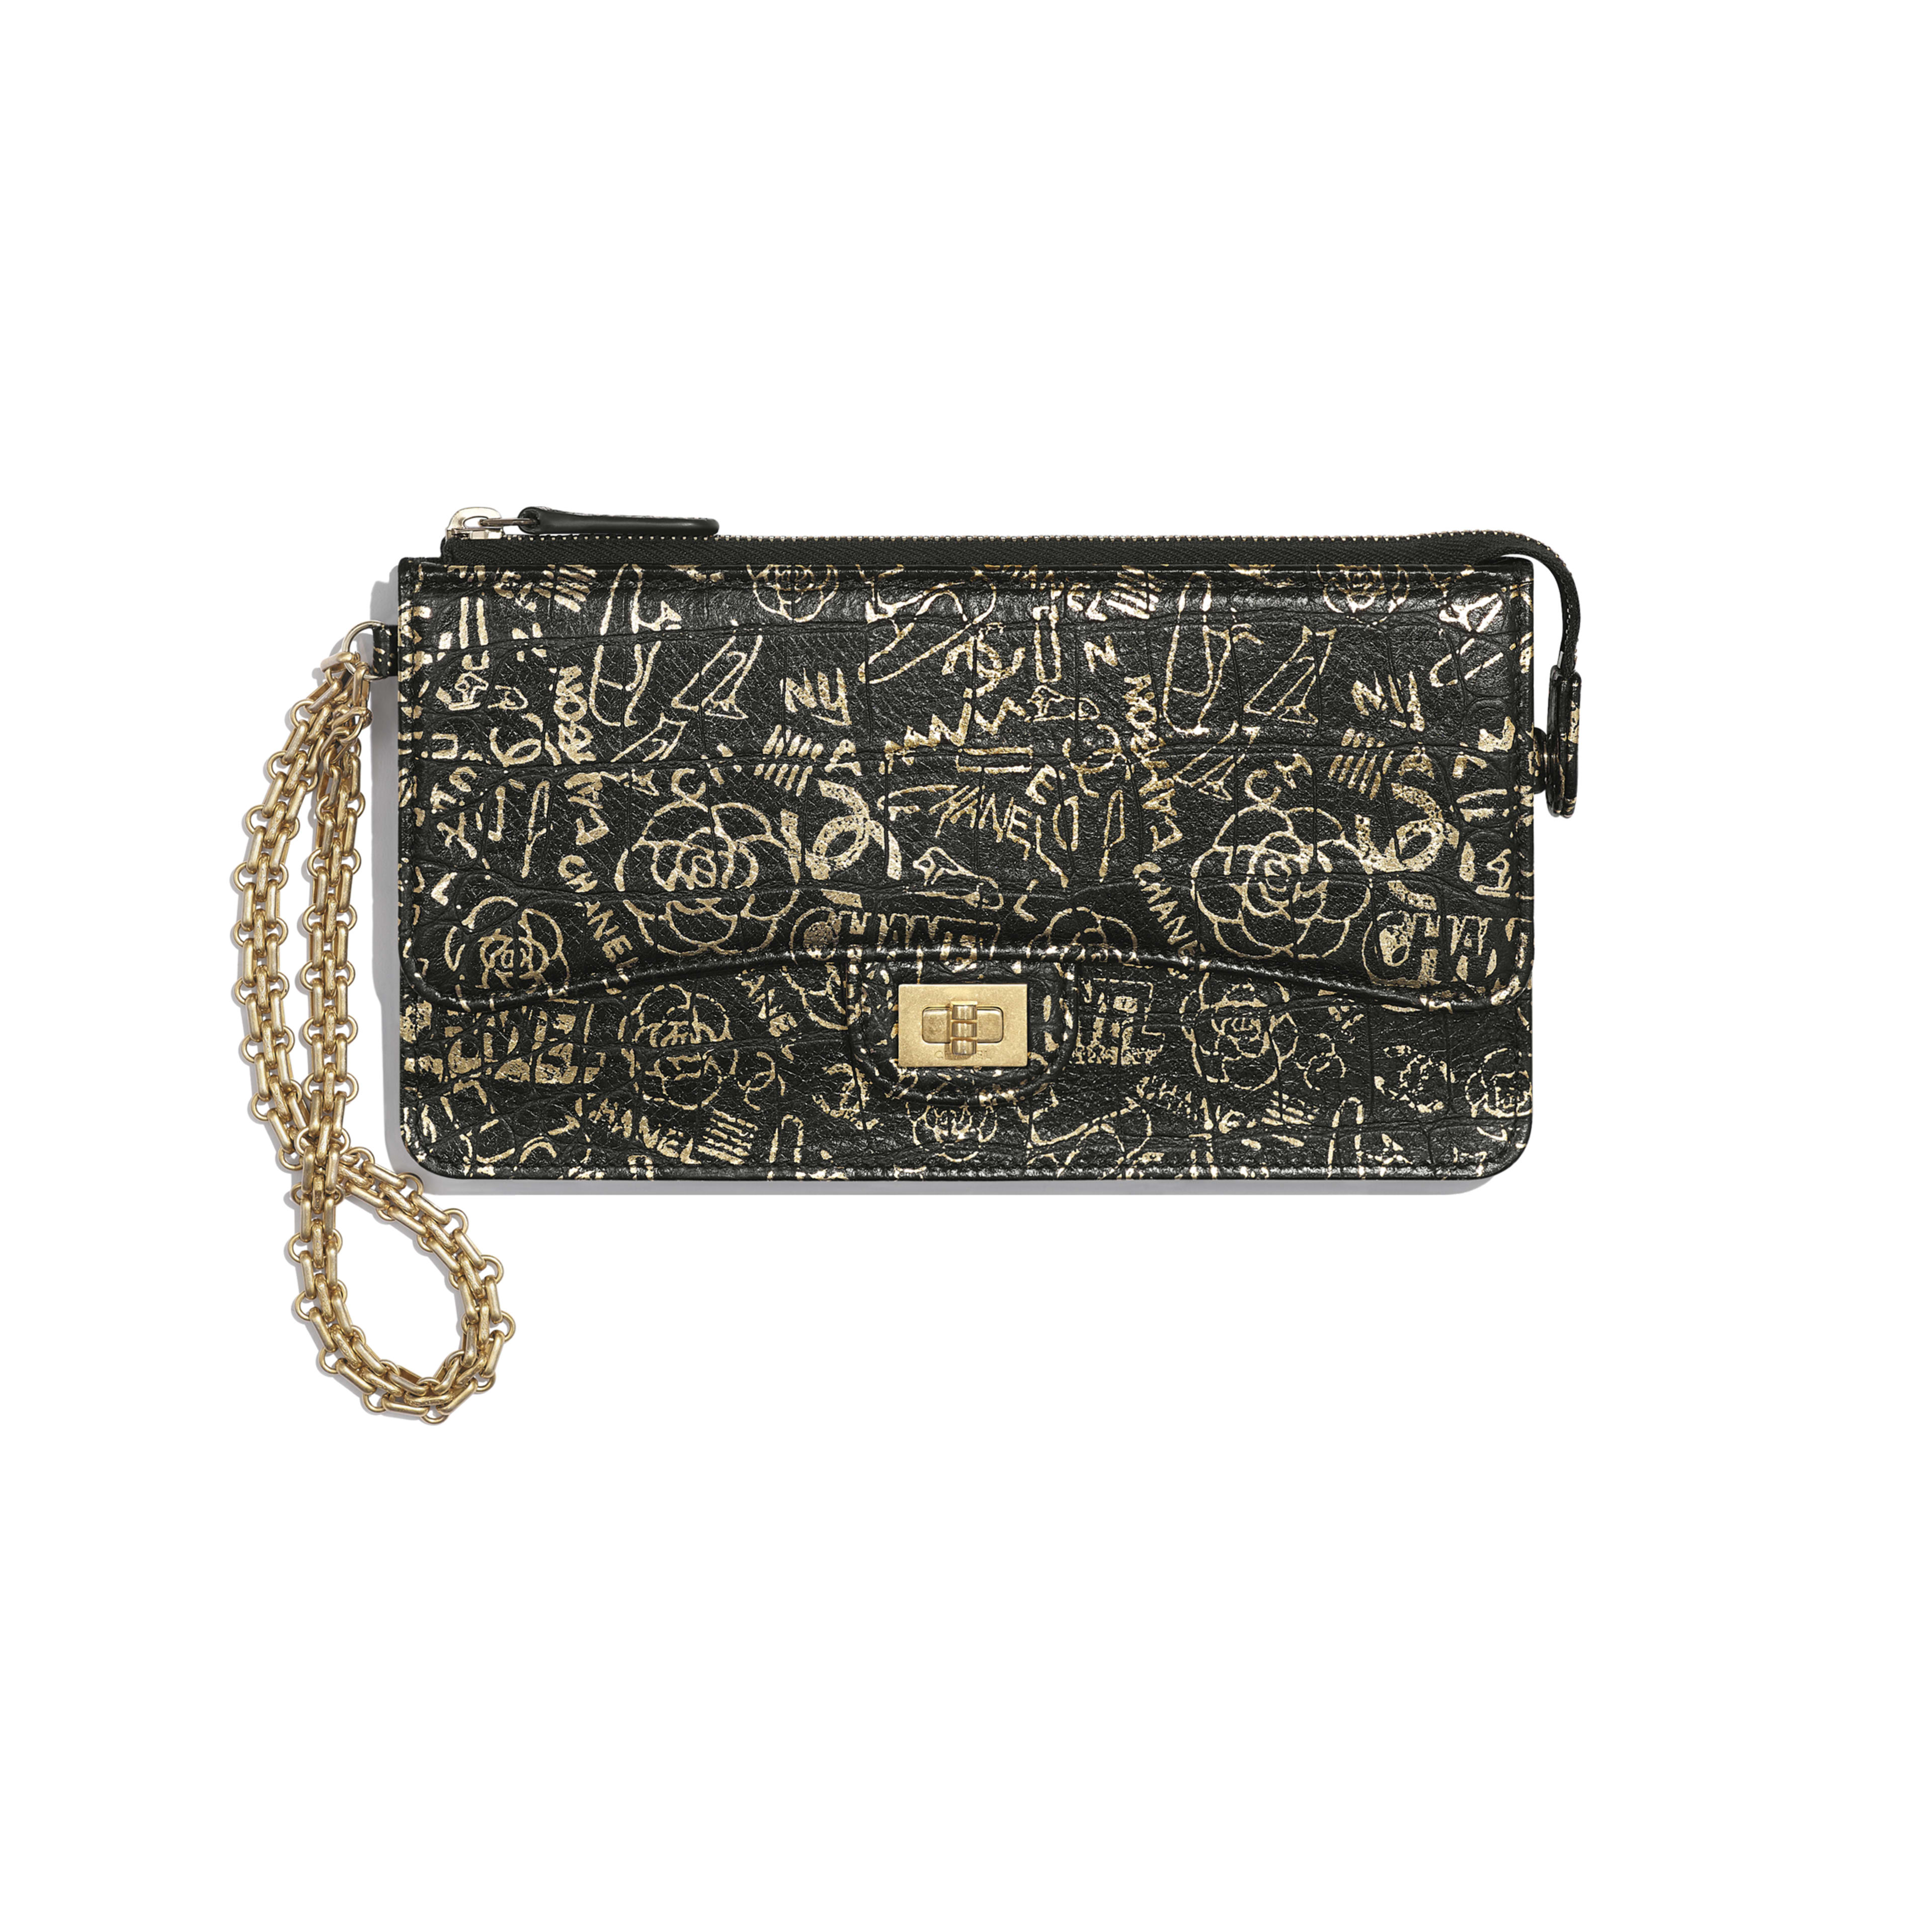 2.55 Pouch With Handle - Black & Gold - Crocodile Embossed Printed Leather & Gold-Tone Metal - Default view - see full sized version